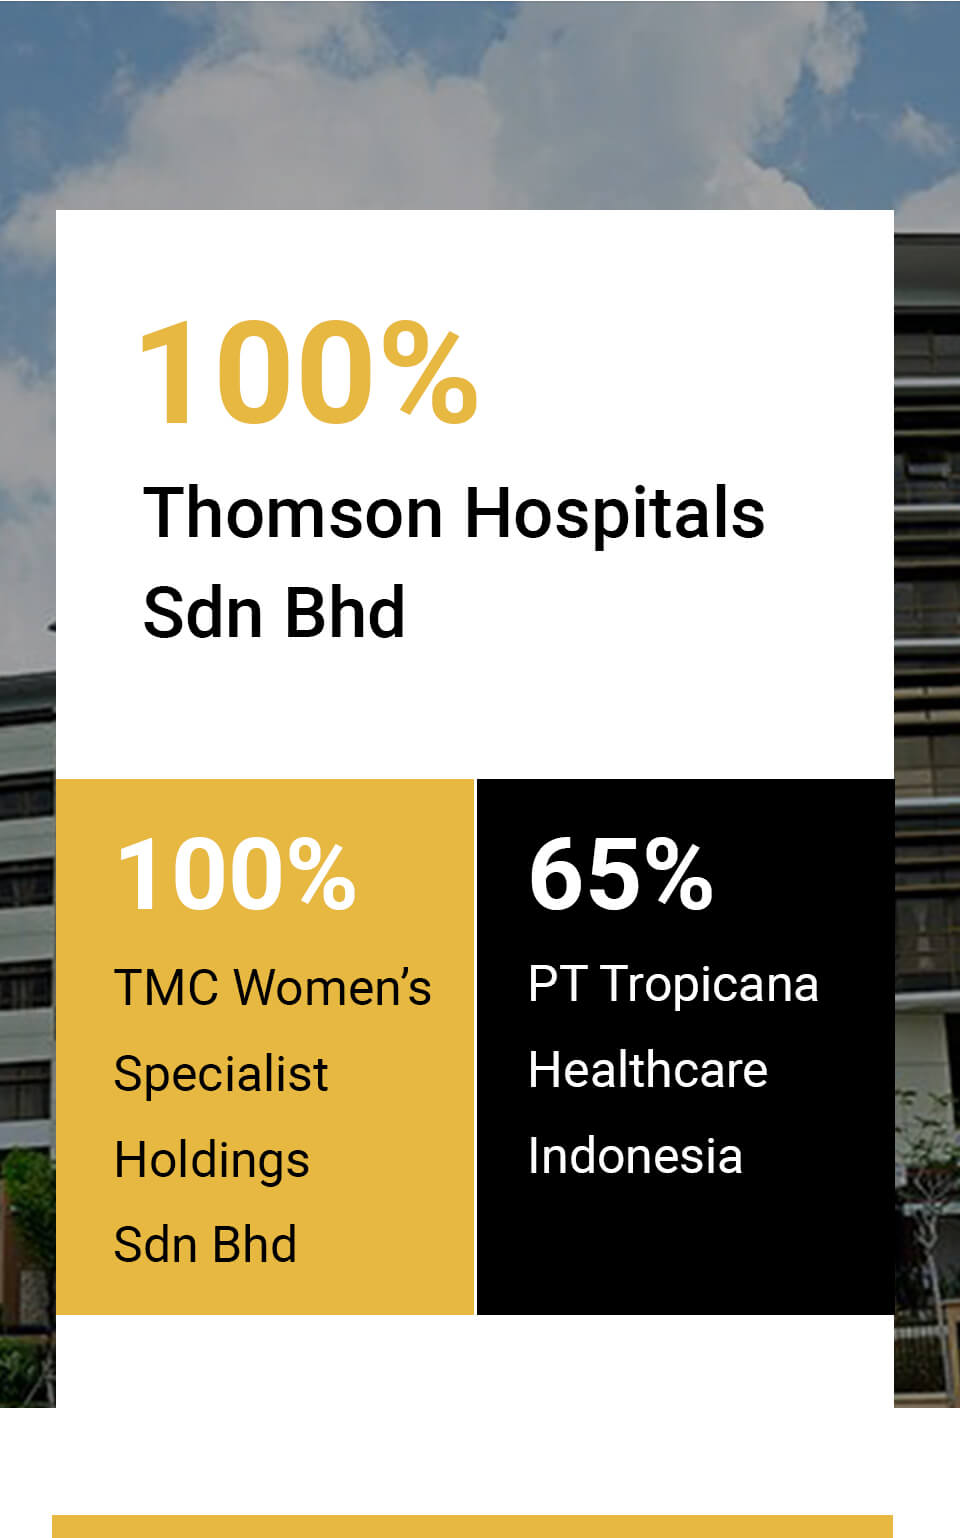 TMC-Lifestyle-company-profile-company-structure-thomson-hospitals-sdn-bhd